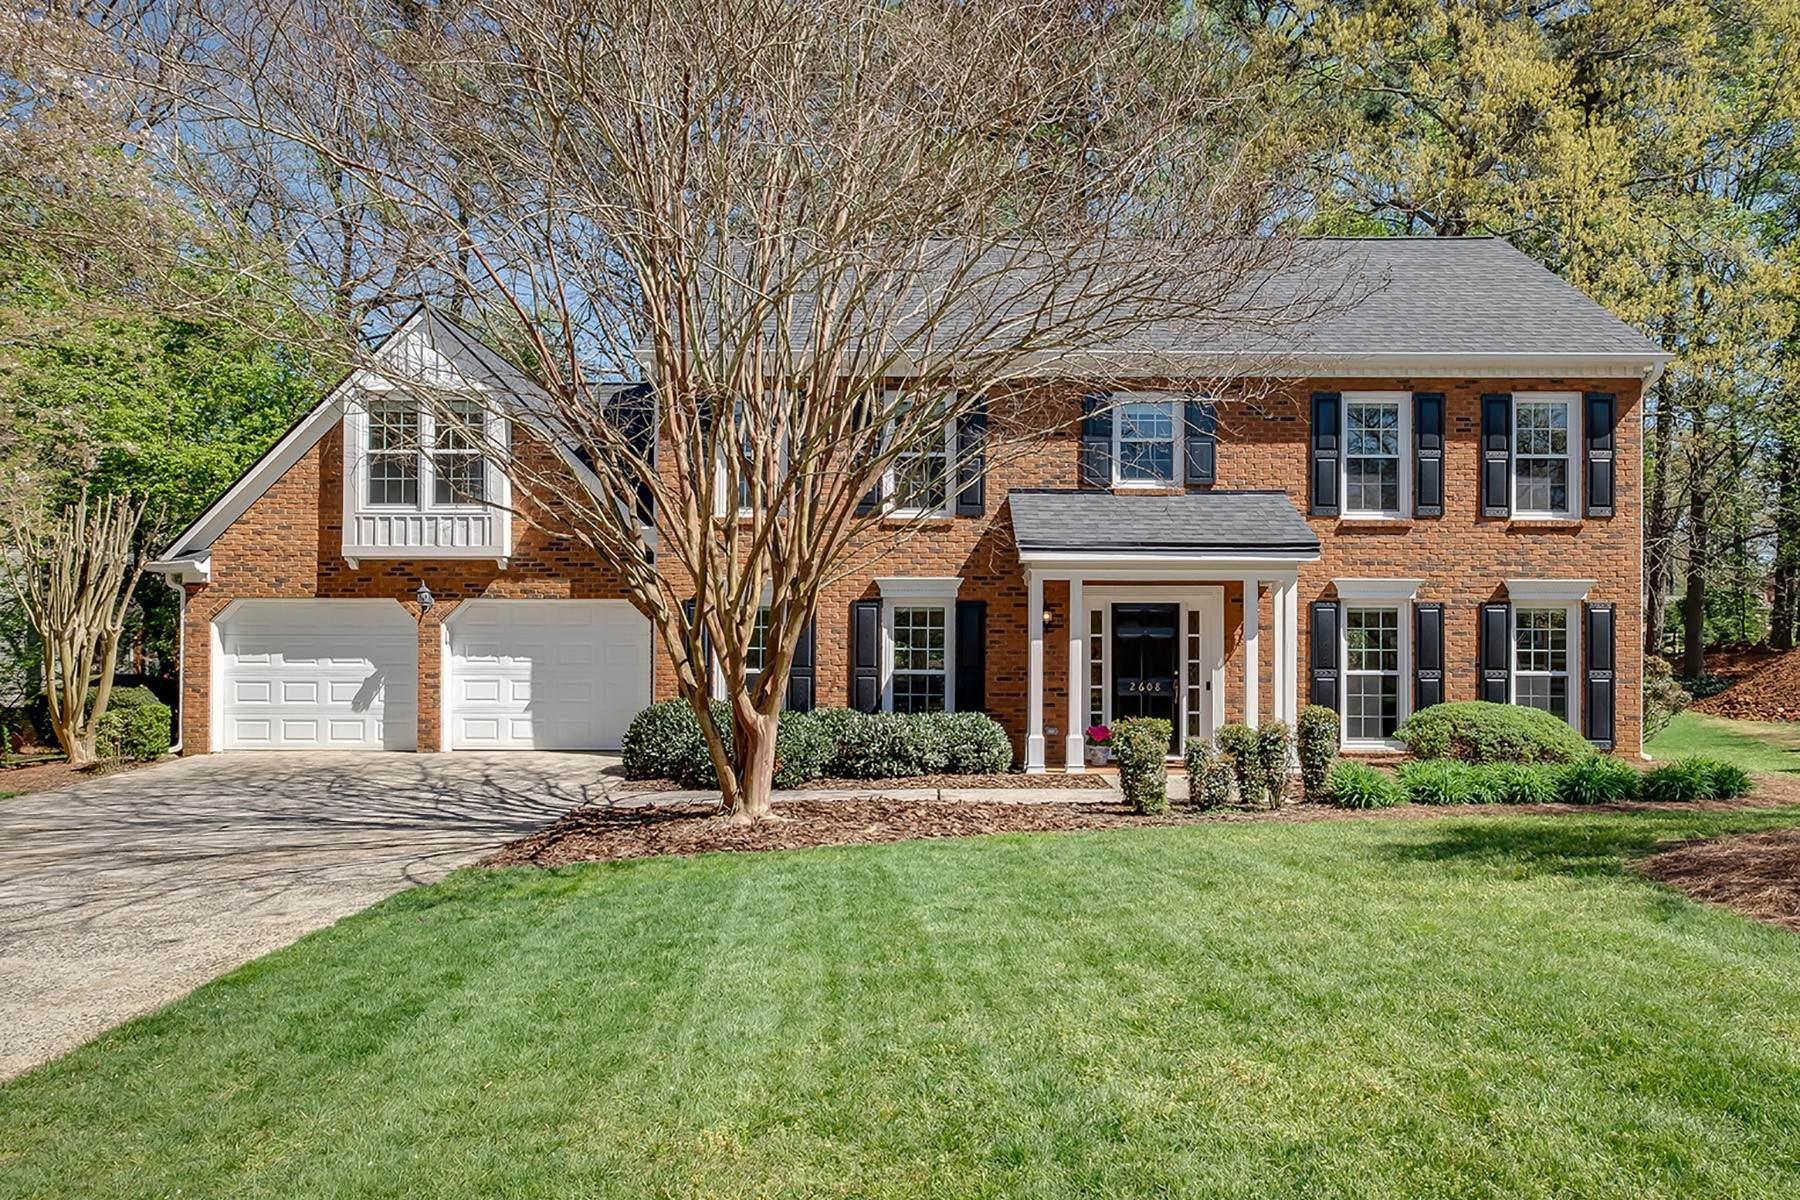 Single Family Homes for Sale at Newly Renovated Home in Desirable Swim and Tennis Neighborhood 2608 Grist Mill Road Marietta, Georgia 30068 United States